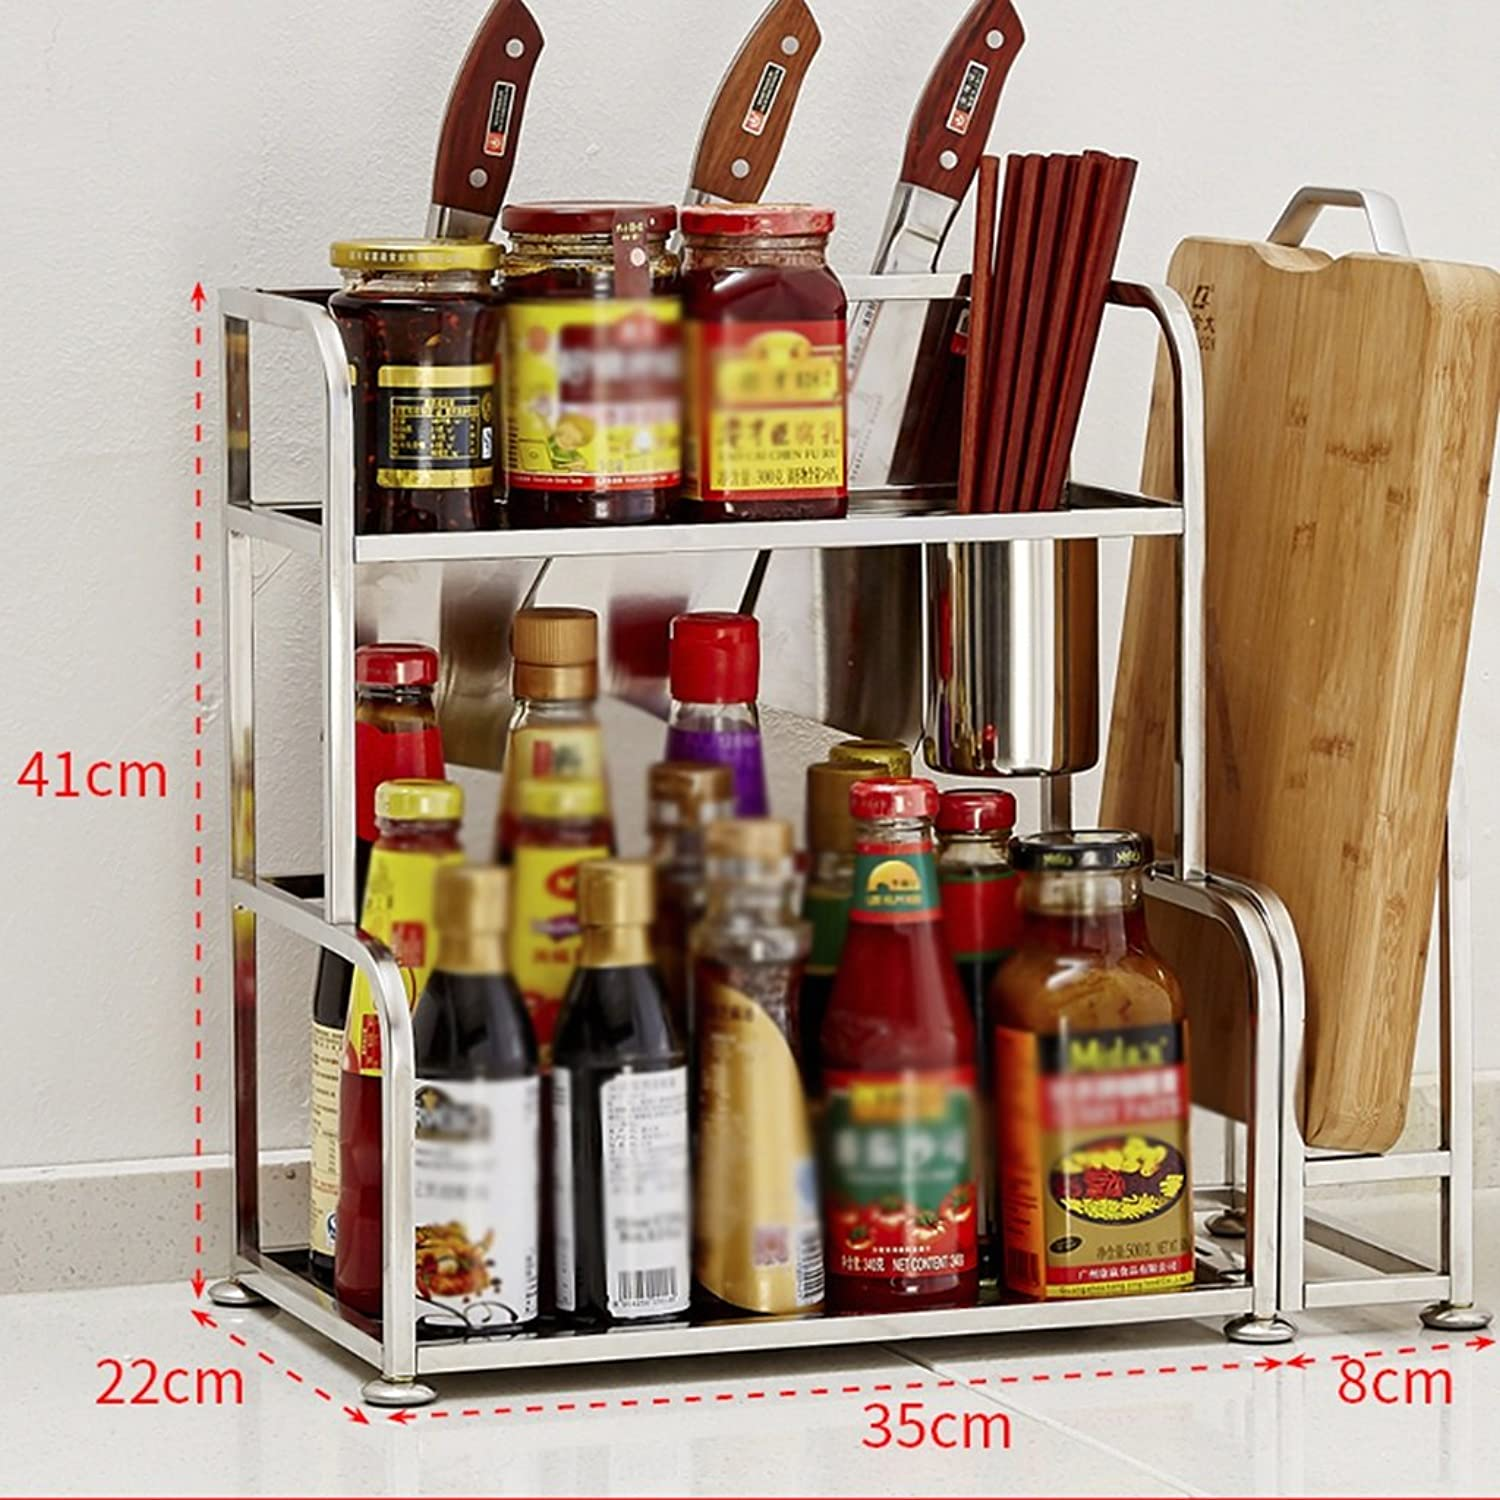 Shelf Stainless Steel Spice Rack Kitchen Articles Storage Rack Wall Hanging Landing Kitchenware (color   B, Size   Length 35cm)